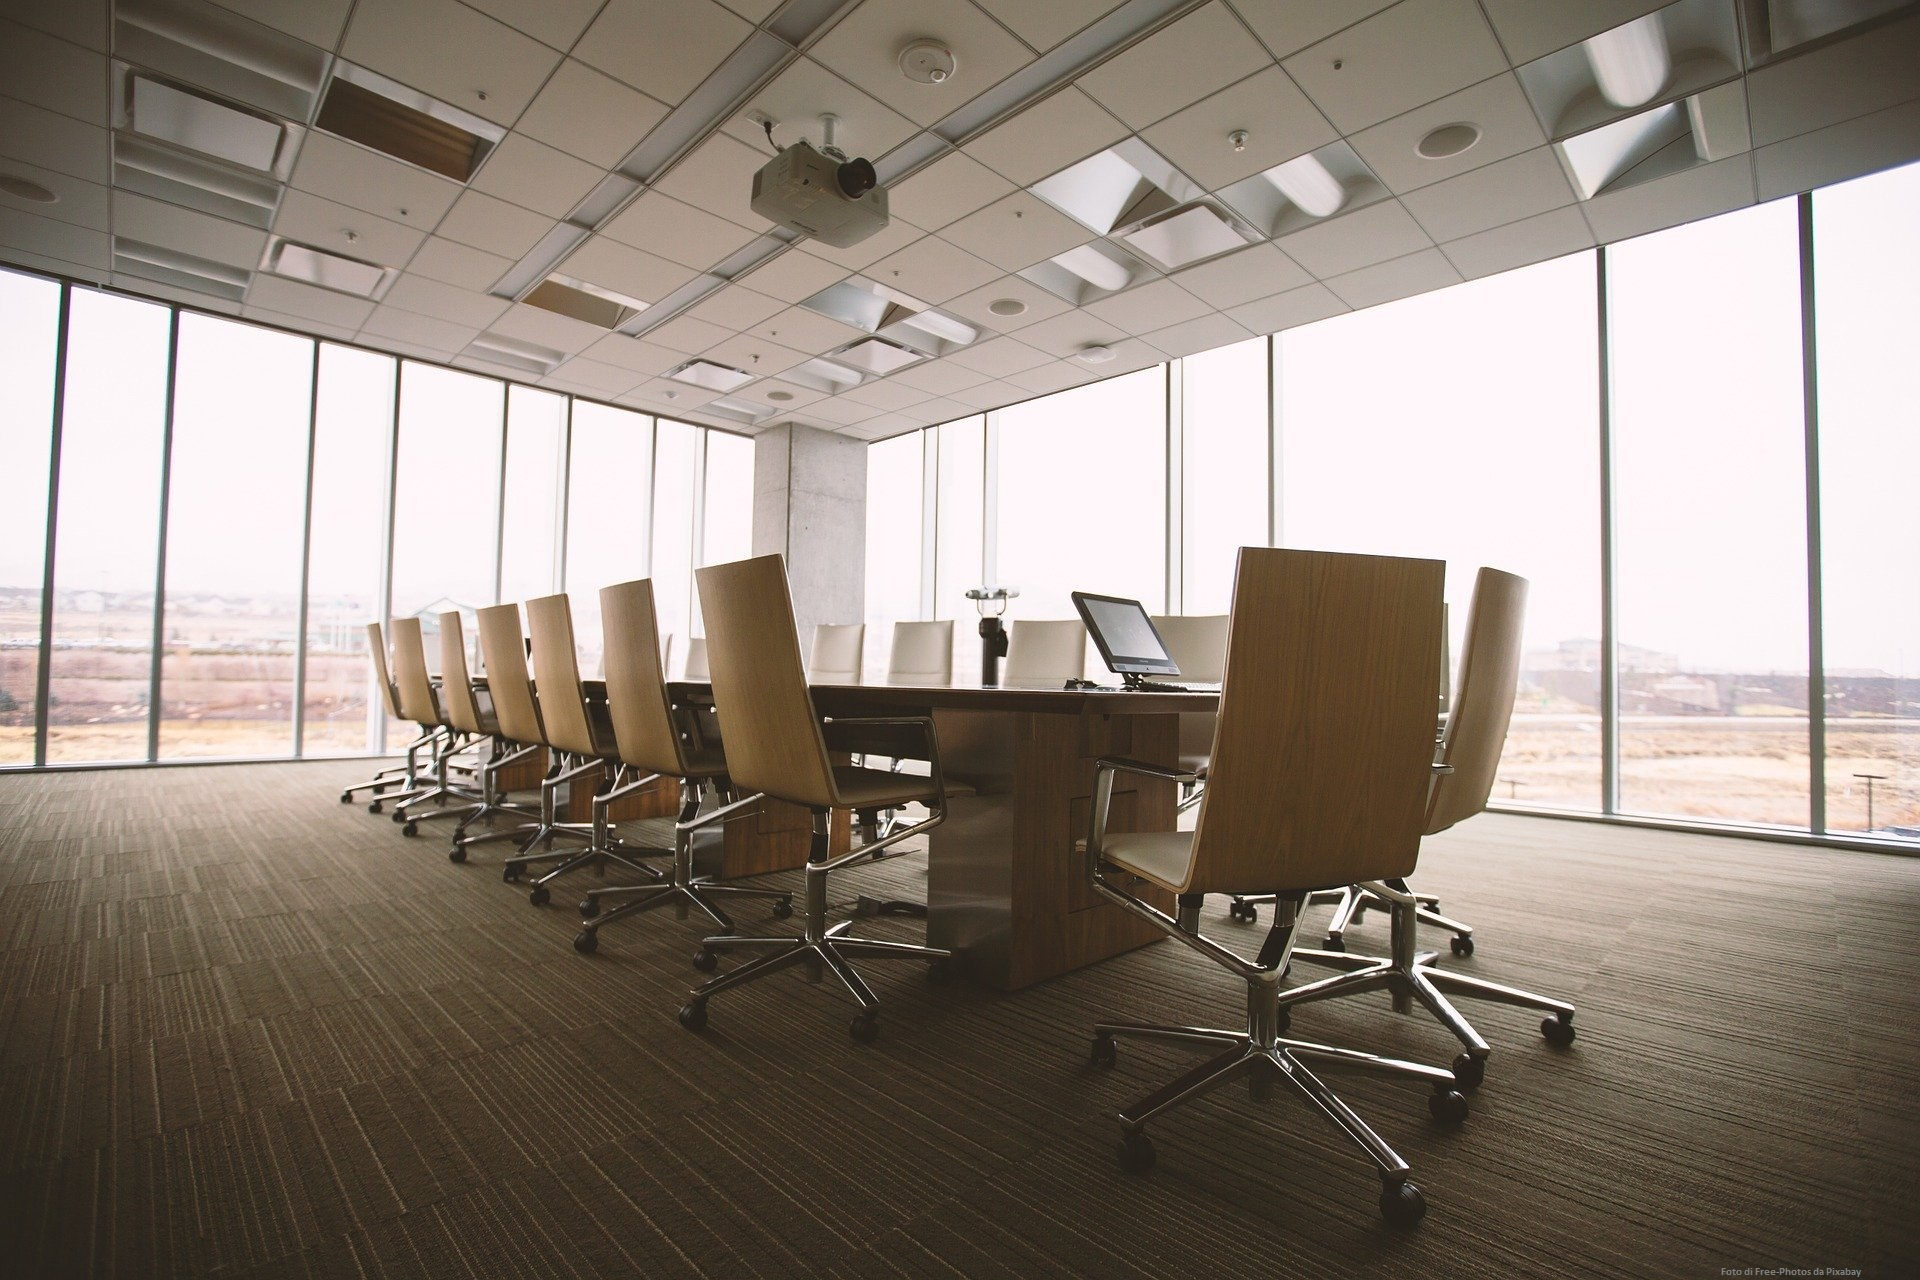 conference-room-768441 1920